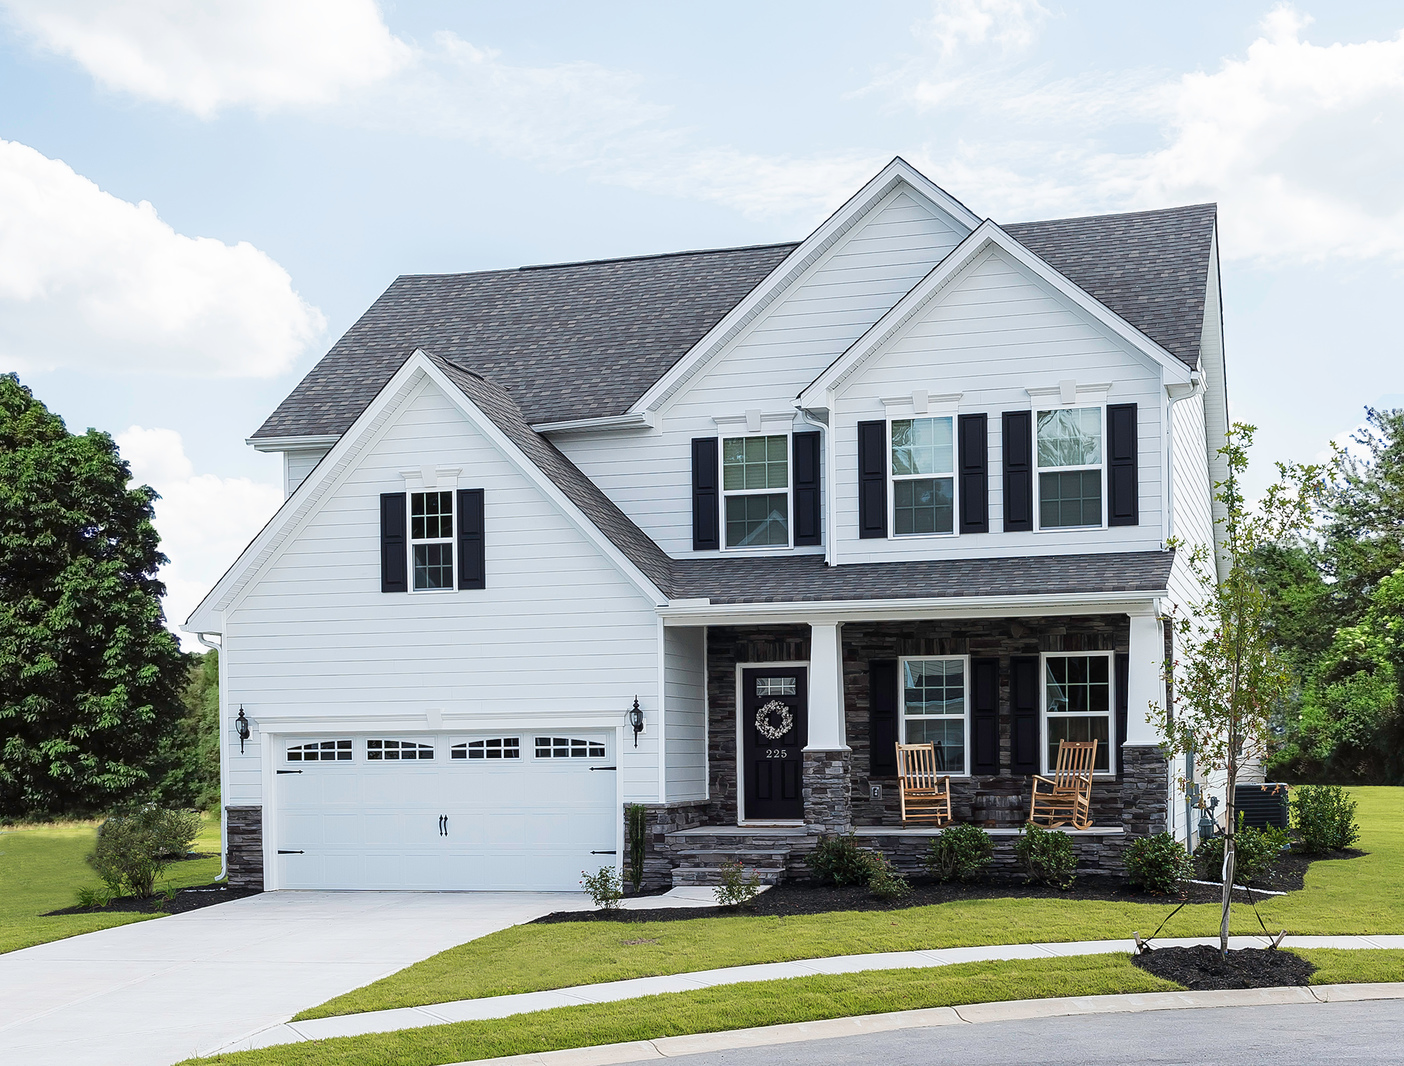 Affordable luxury in Monongalia Schools —tour our gorgeous model and community today!